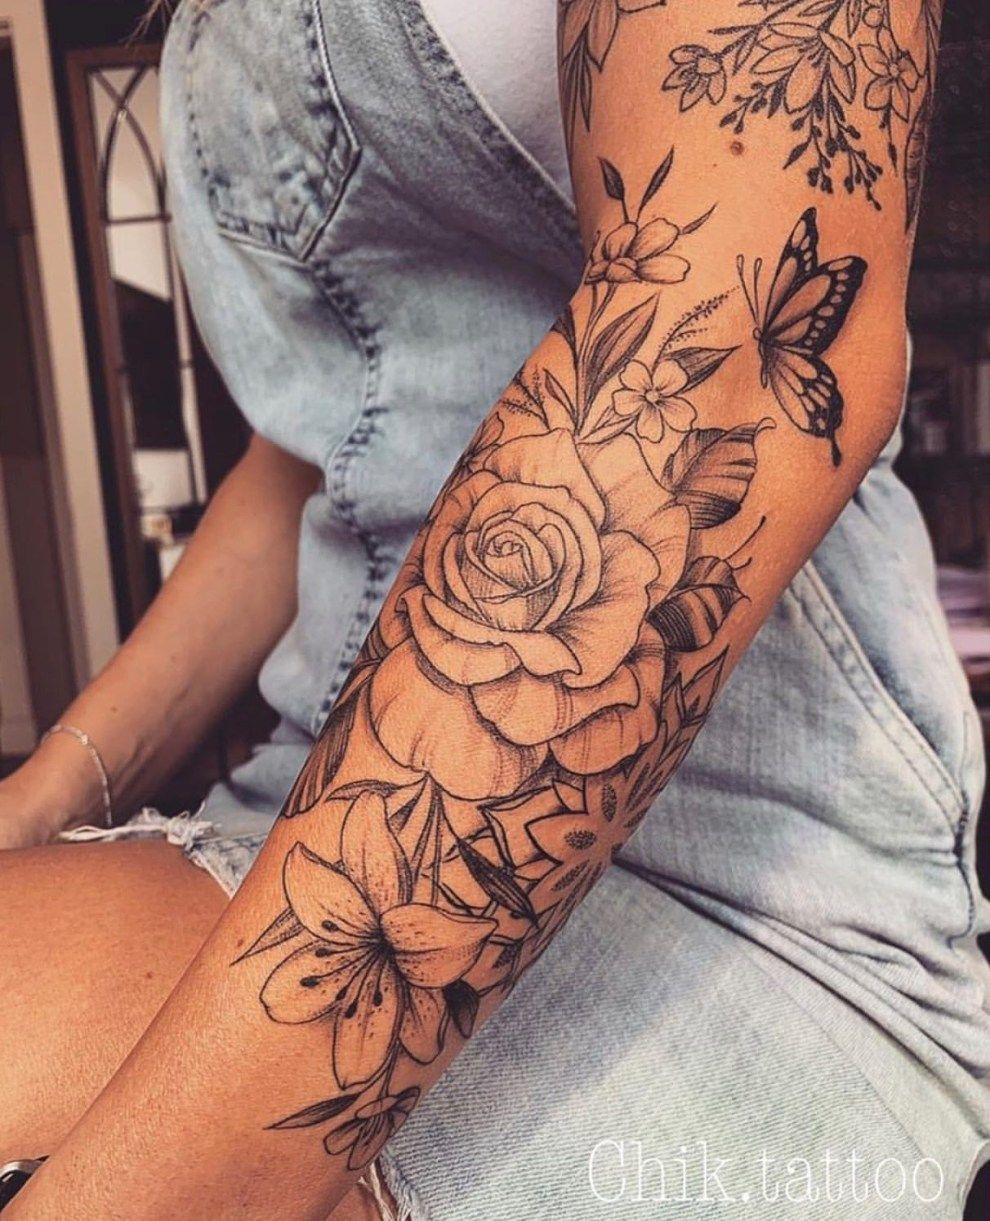 30+ Admiring Arm Tattoos Ideas For Women To Try Asap - AYAYOUTFITS